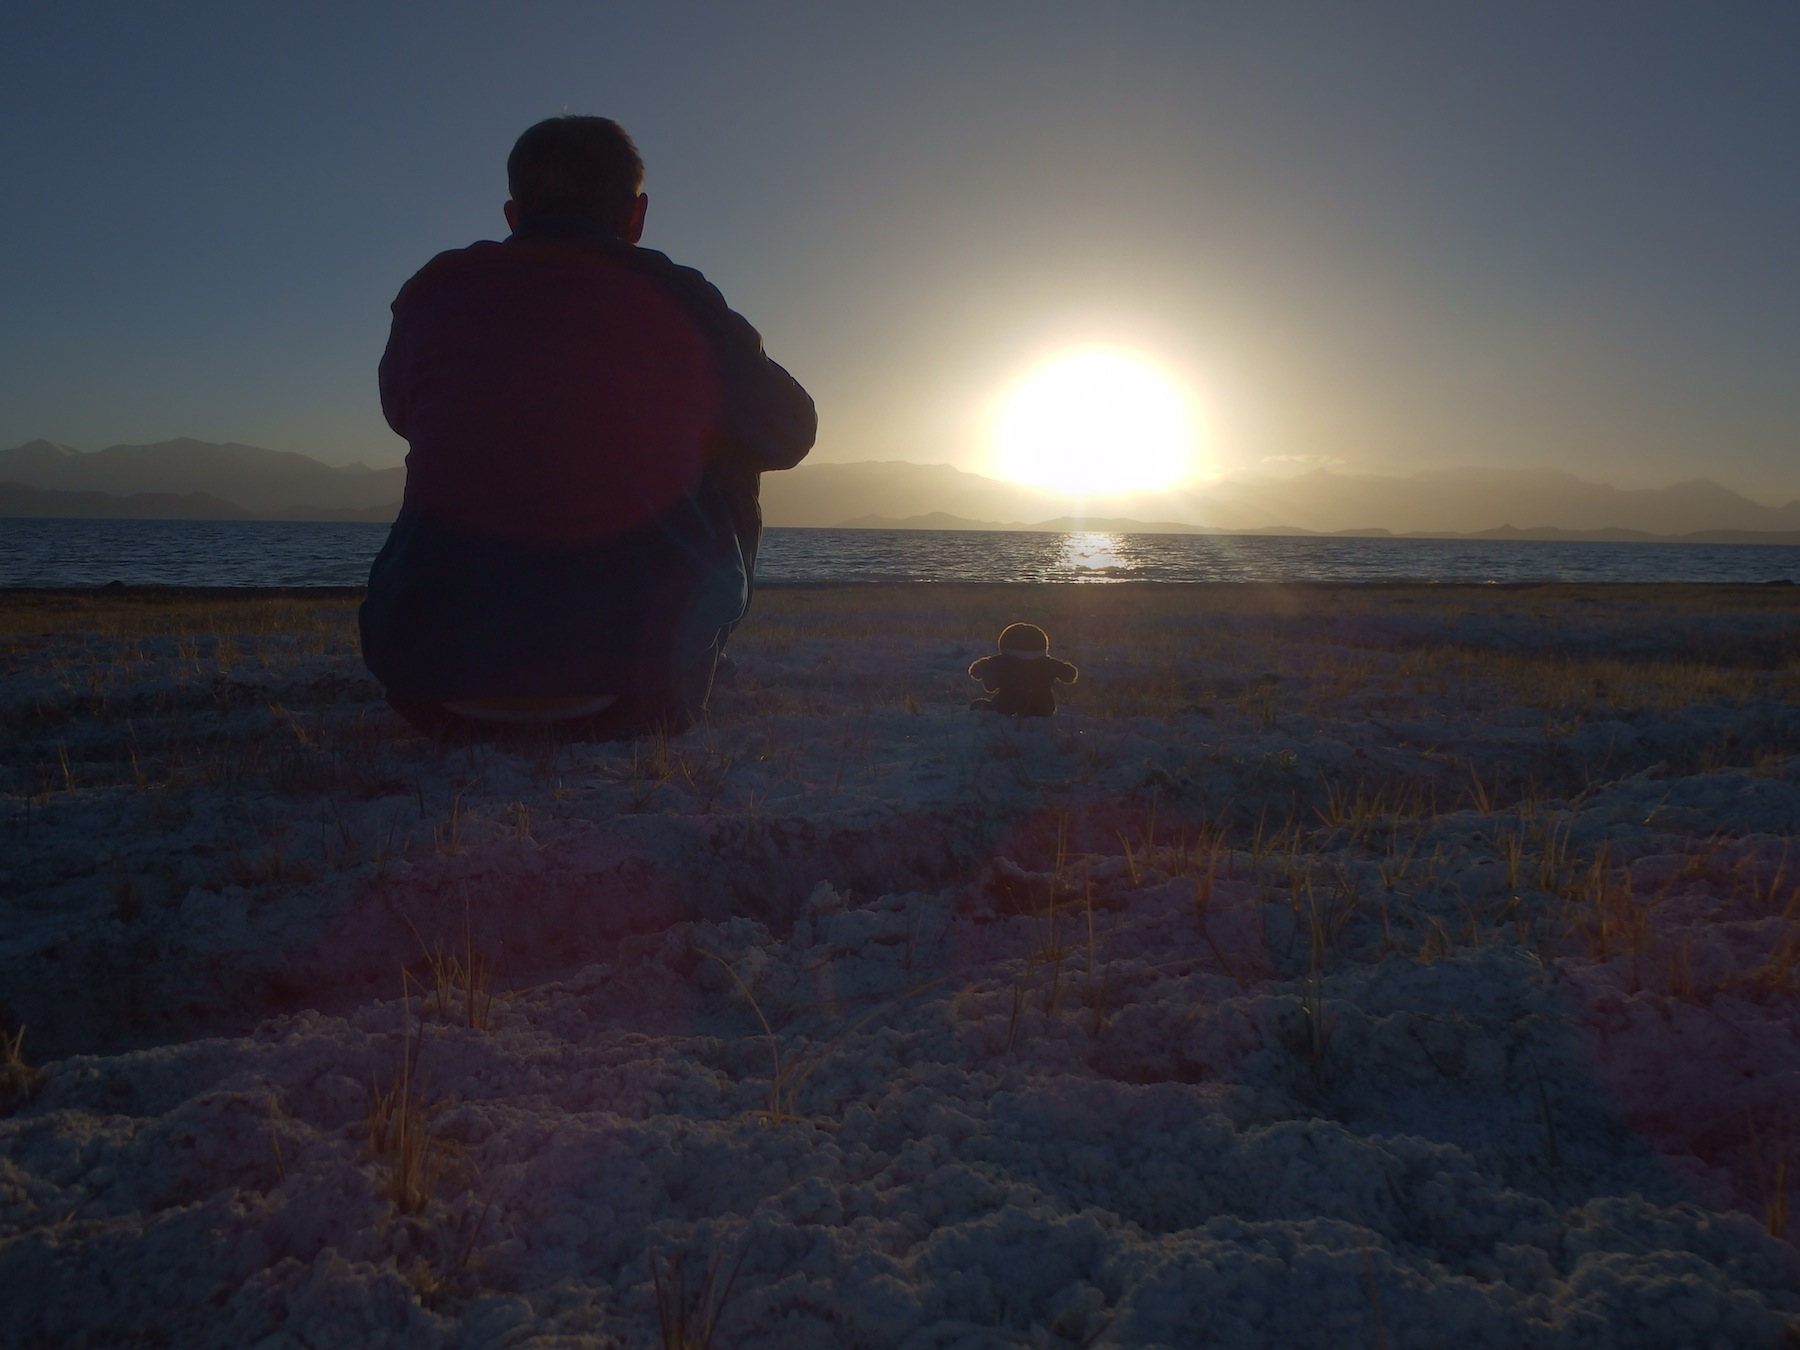 Watching the sunset with Kiwi Ted (Tajikistan - Karakol)